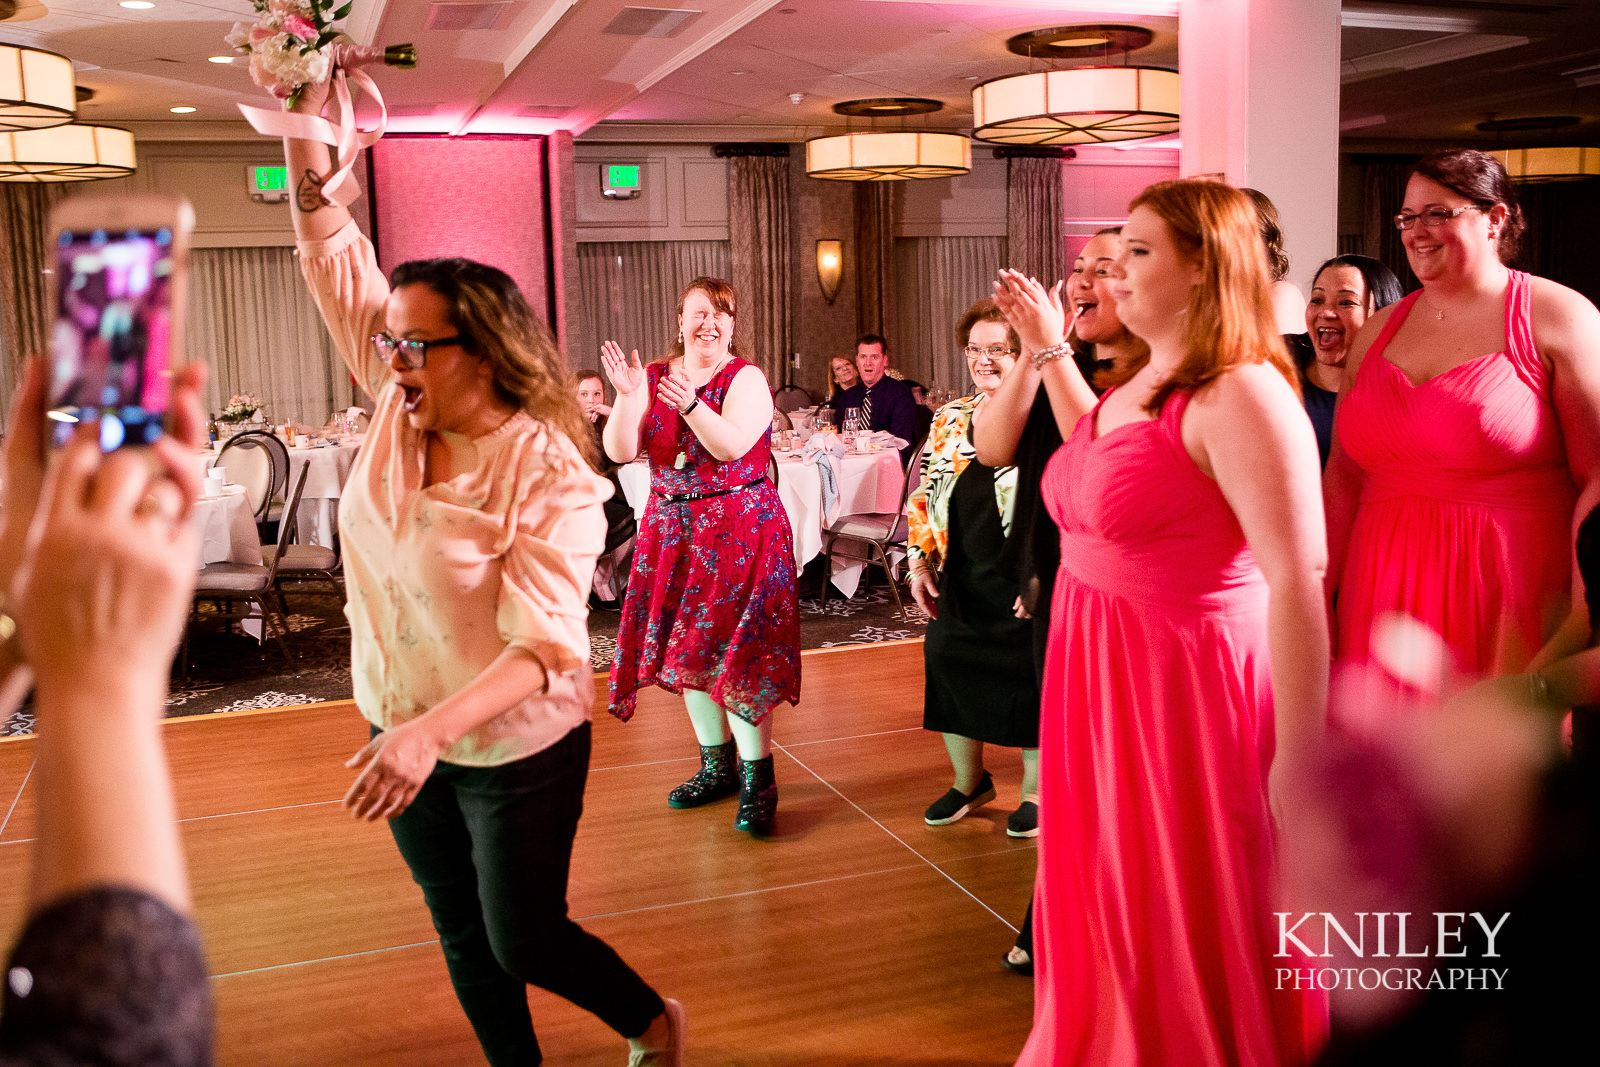 107 - Woodcliff Hotel - Rochester NY wedding photo - Kniley Photography.jpg